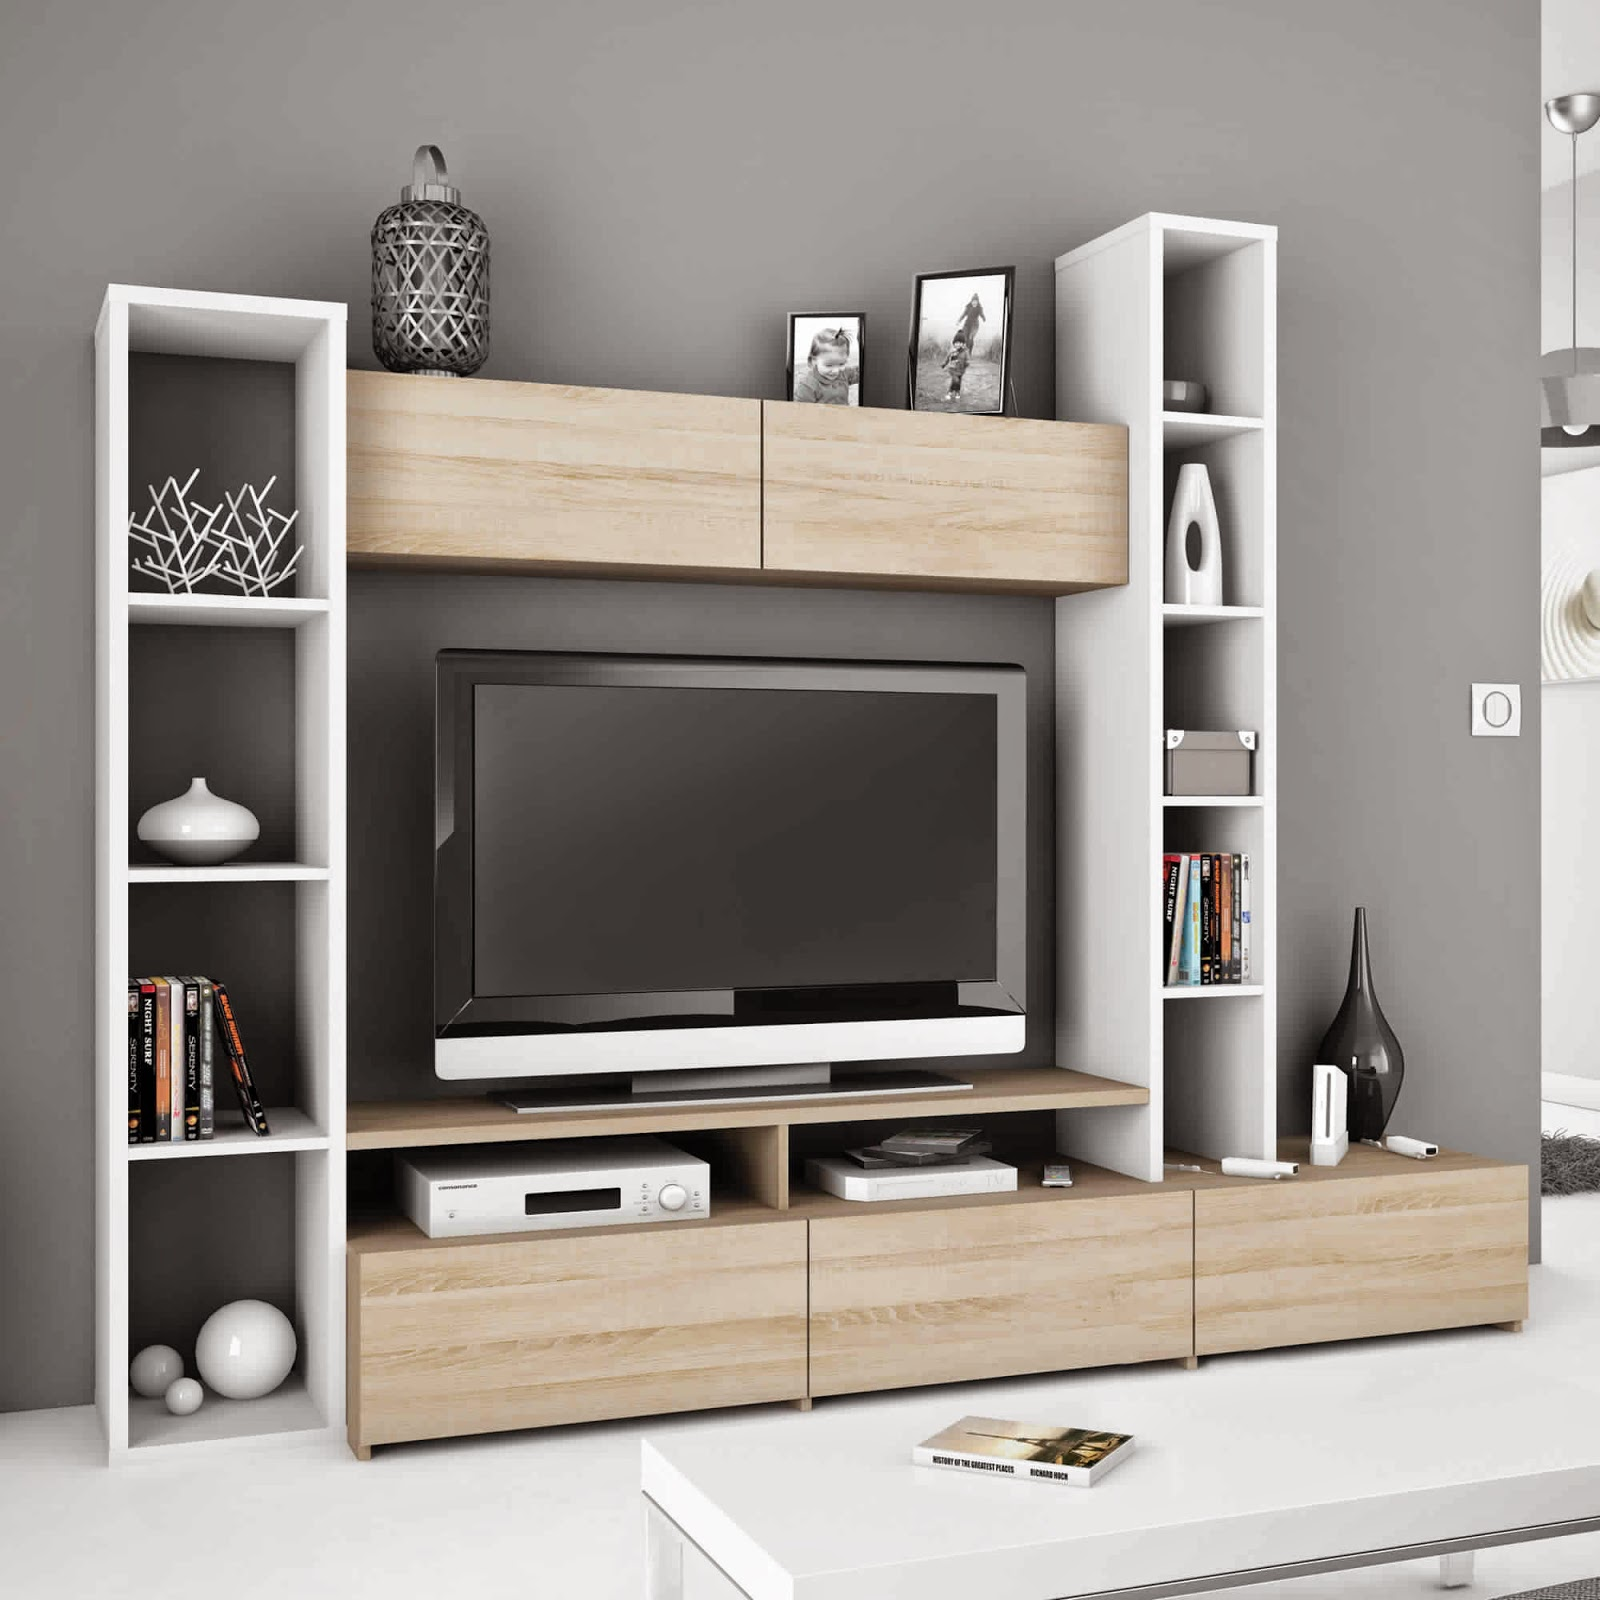 meuble tele avec rangement id es de d coration int rieure french decor. Black Bedroom Furniture Sets. Home Design Ideas